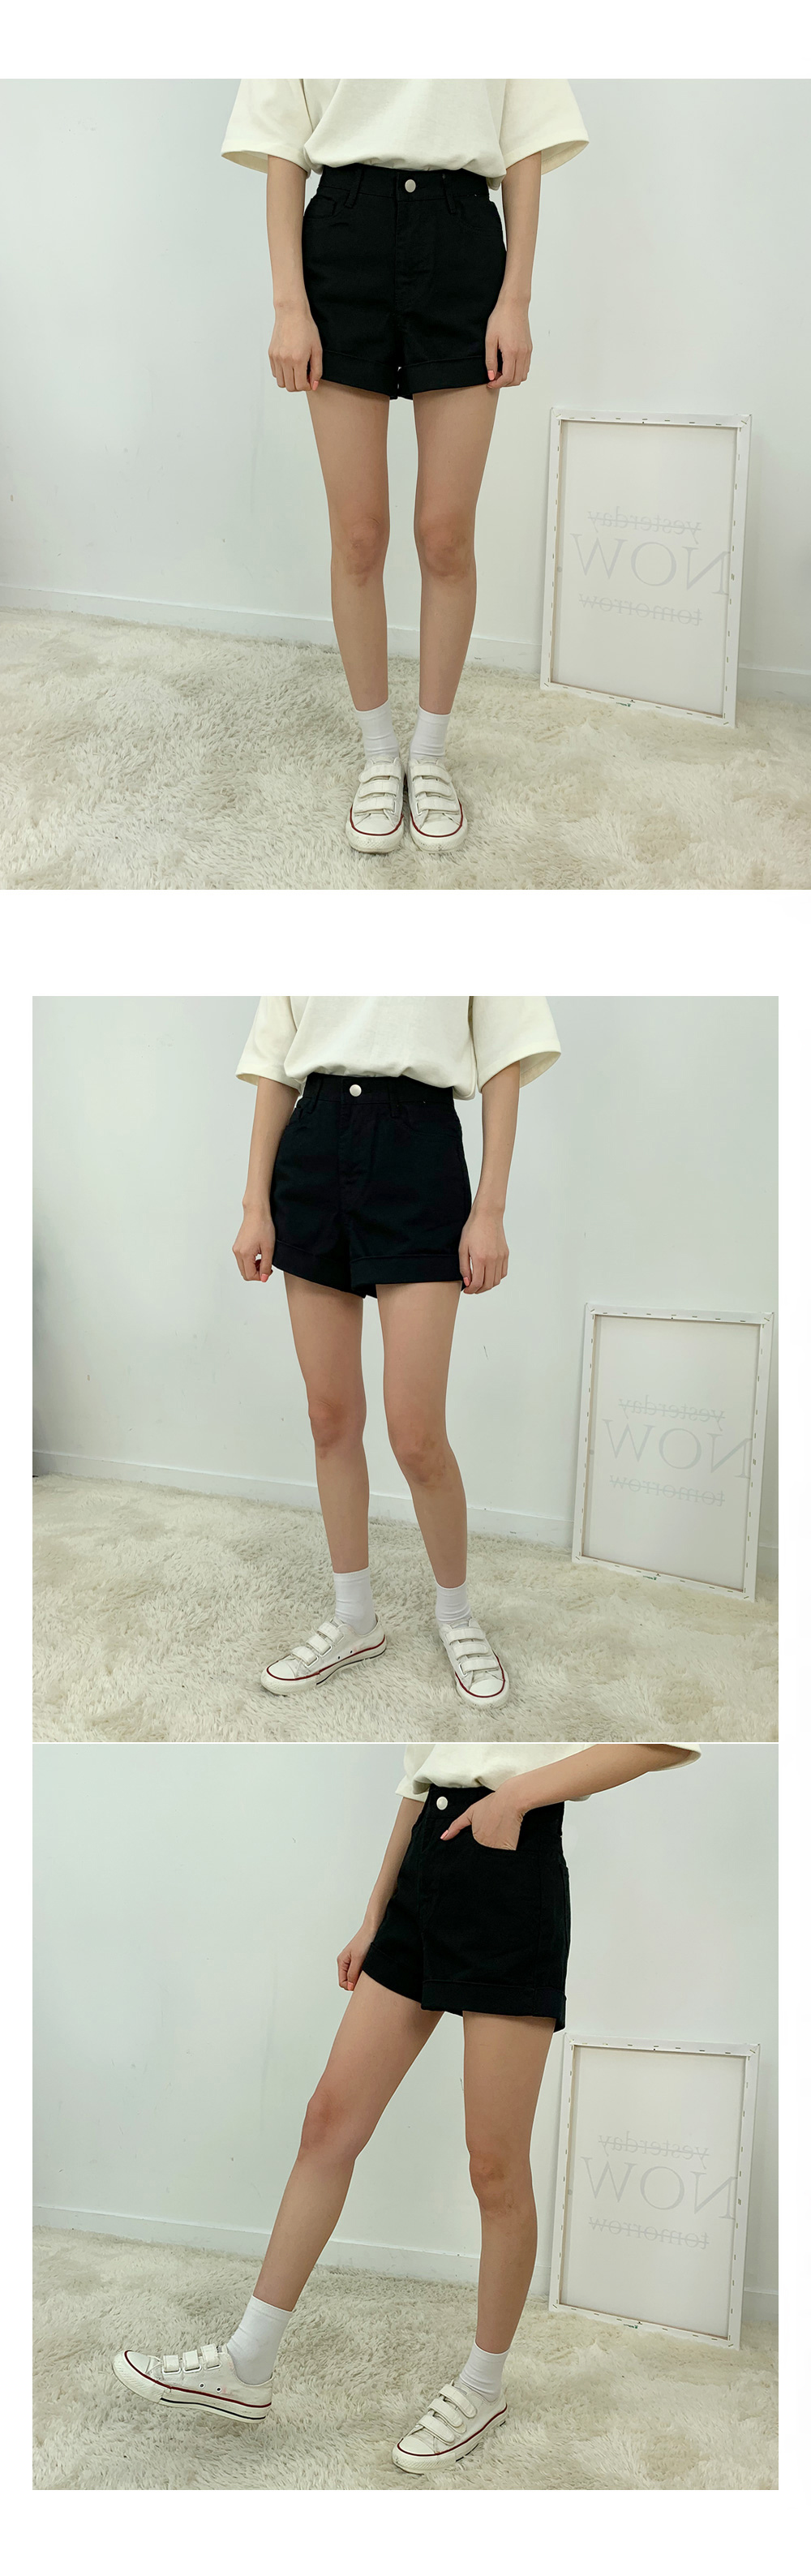 Two Dipole Roll Up Short Pants